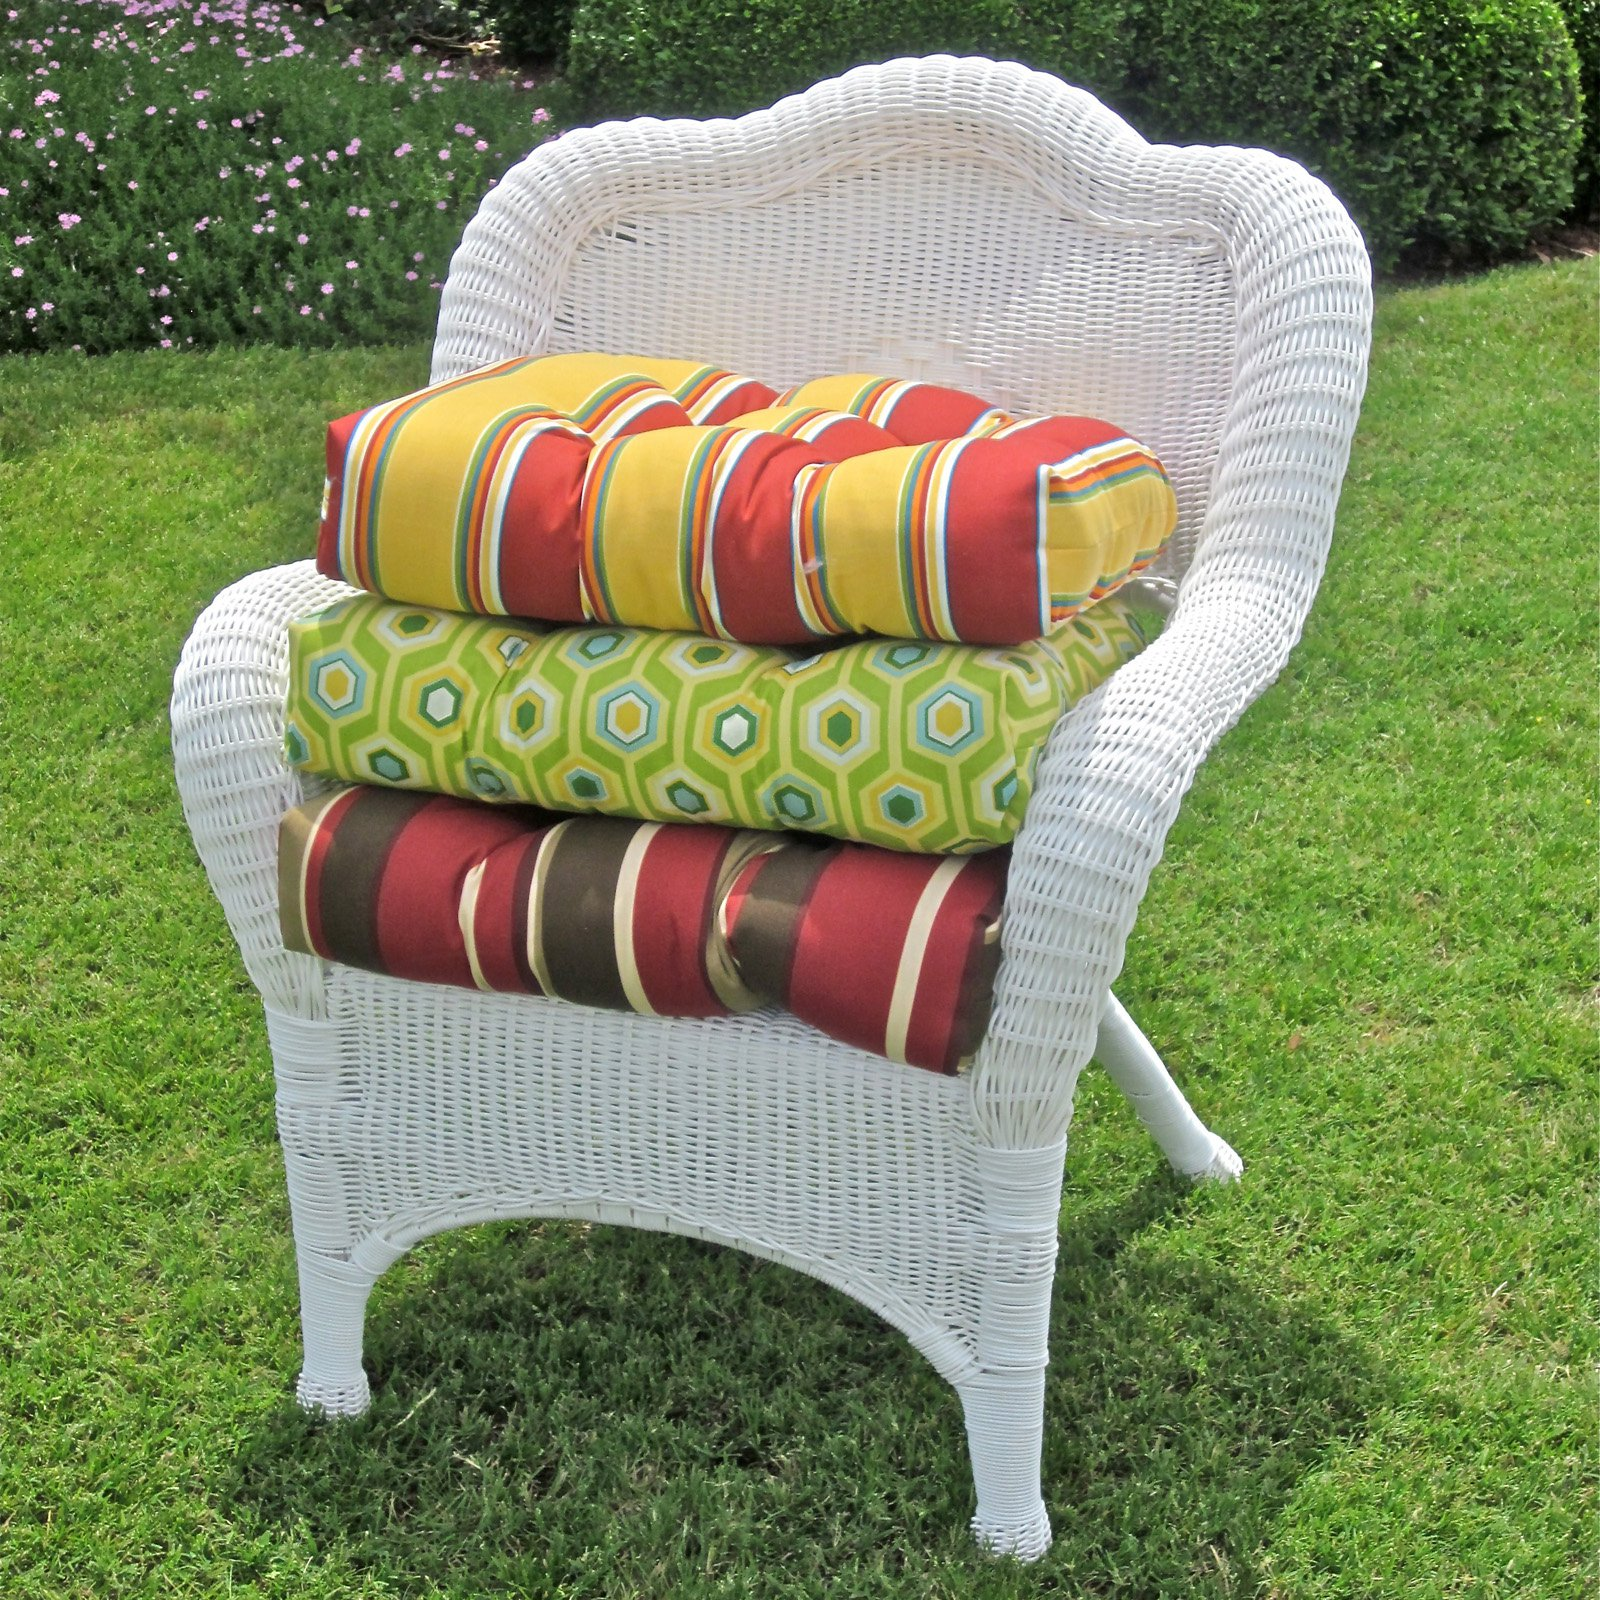 patio furniture cushions outdoor wicker chair cushion - outdoor cushions at hayneedle ZICAMPN